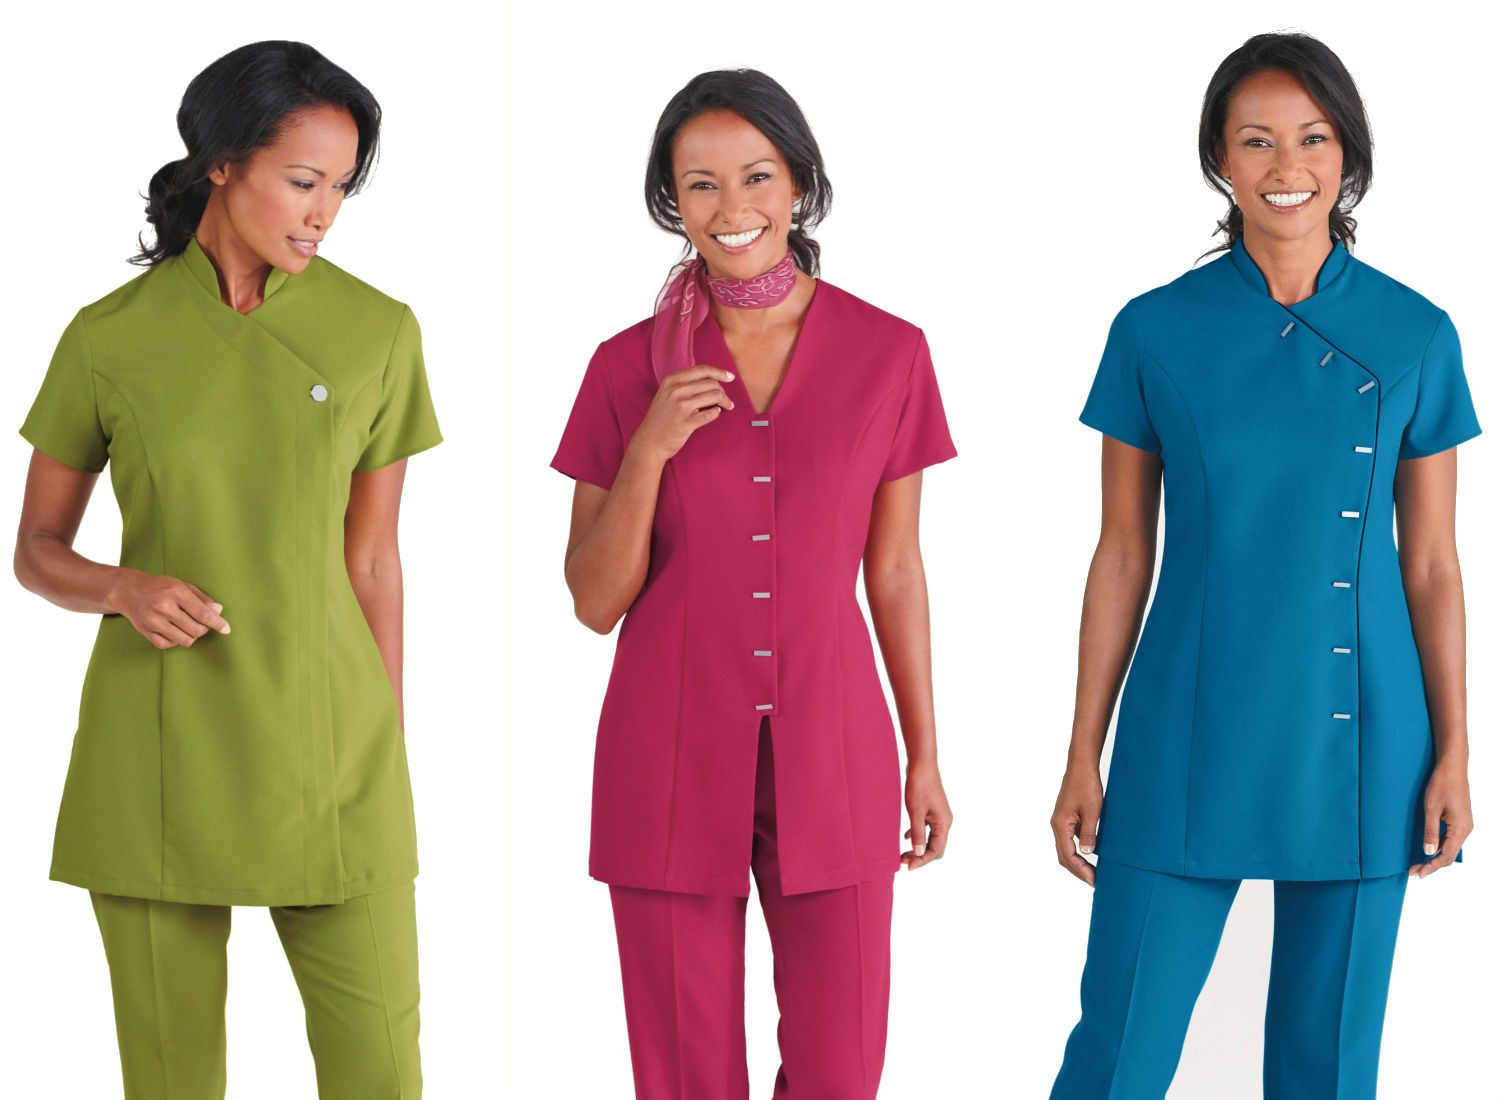 Spa uniform spa uniforms pinterest for Uniform spa salon